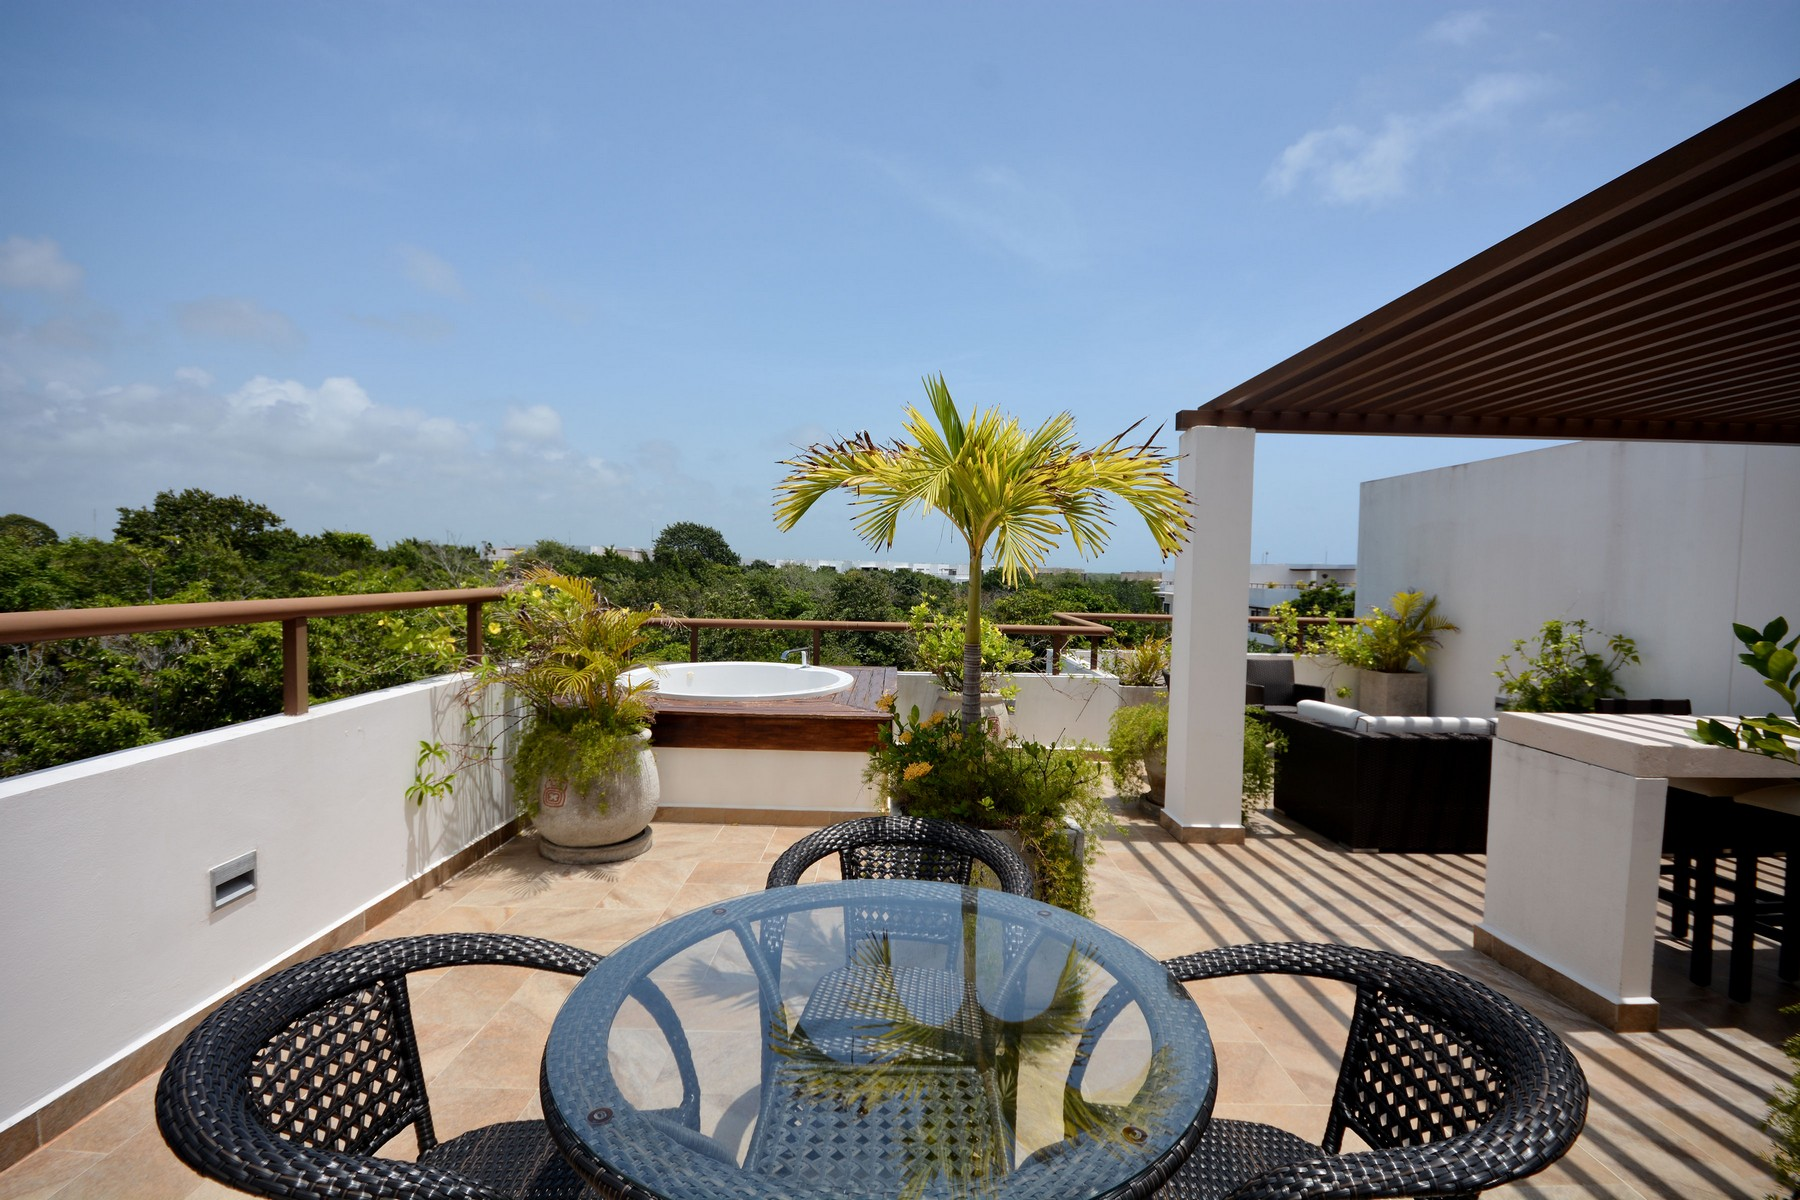 Additional photo for property listing at PENTHOUSE DE LUJO EN UNA COMUNIDAD DE GOLF 5 ESTRELLAS PH Tao Community Carretera federal chetumal- B.Juarez km 250 Akumal, Quintana Roo 77750 México